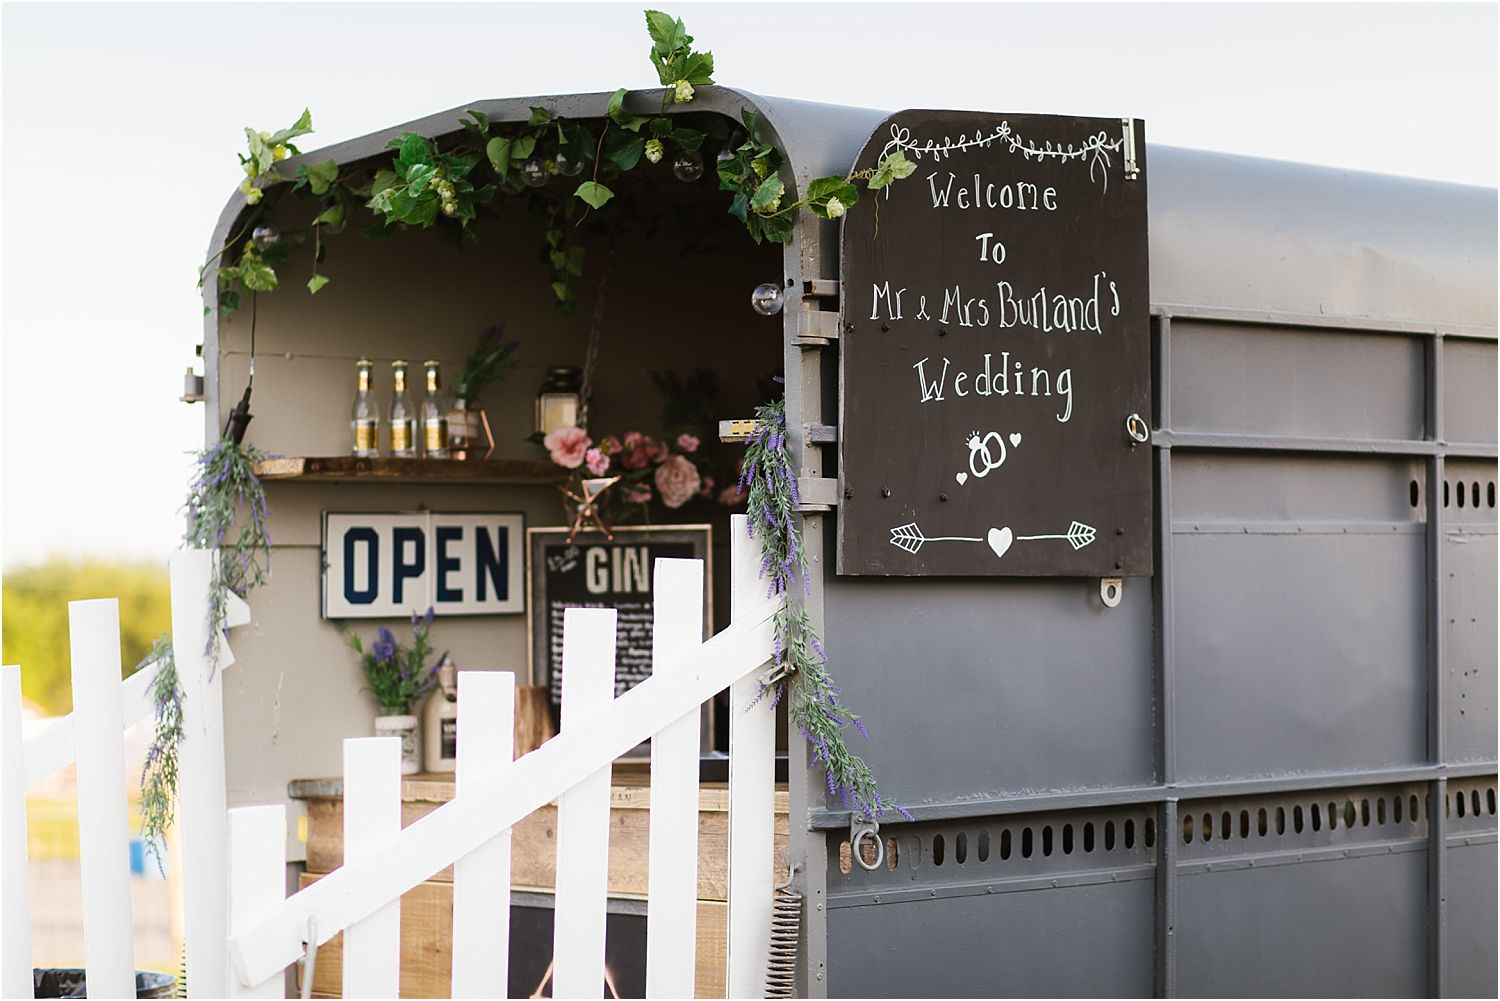 Horse box gin bar at rural Lancashire wedding